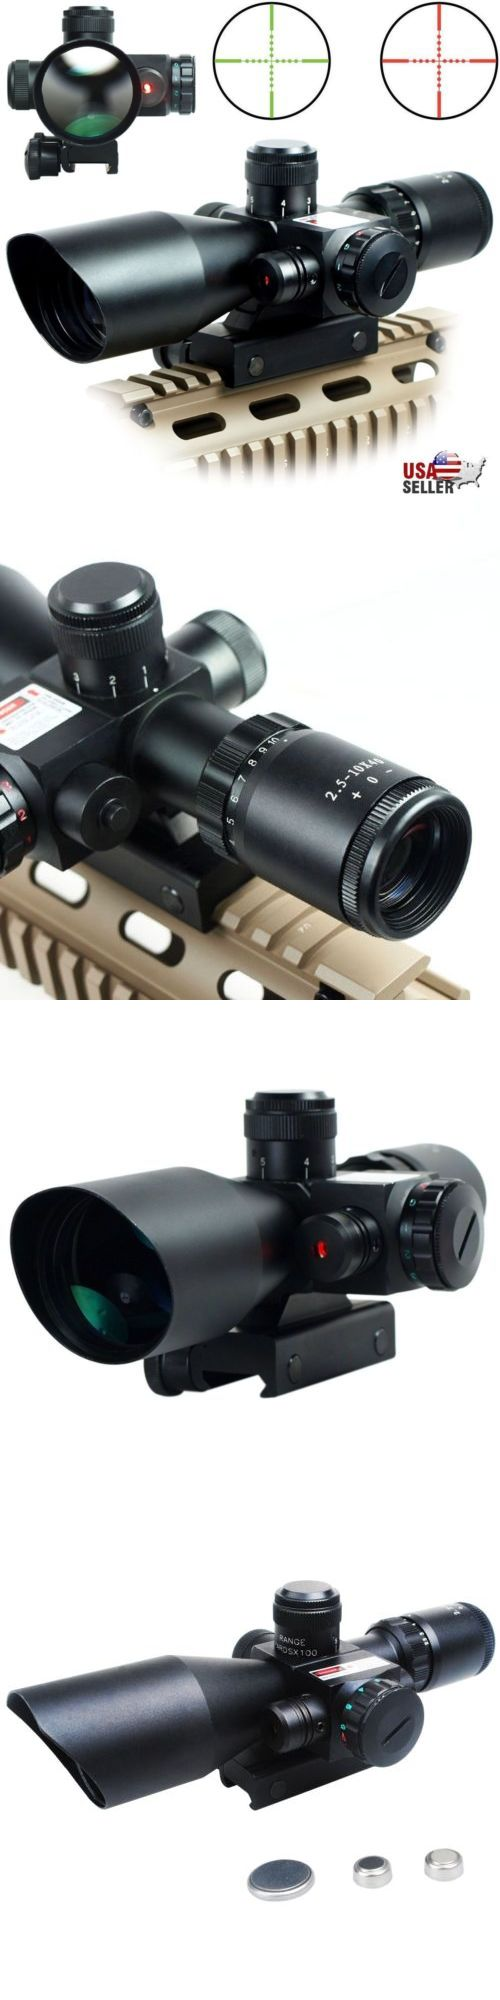 Red Dot and Laser Scopes 66827: 2.5-10X40 Tactical Rifle Scope Red Green Mil-Dot Illuminated Red Laser Mount -> BUY IT NOW ONLY: $45.99 on eBay!